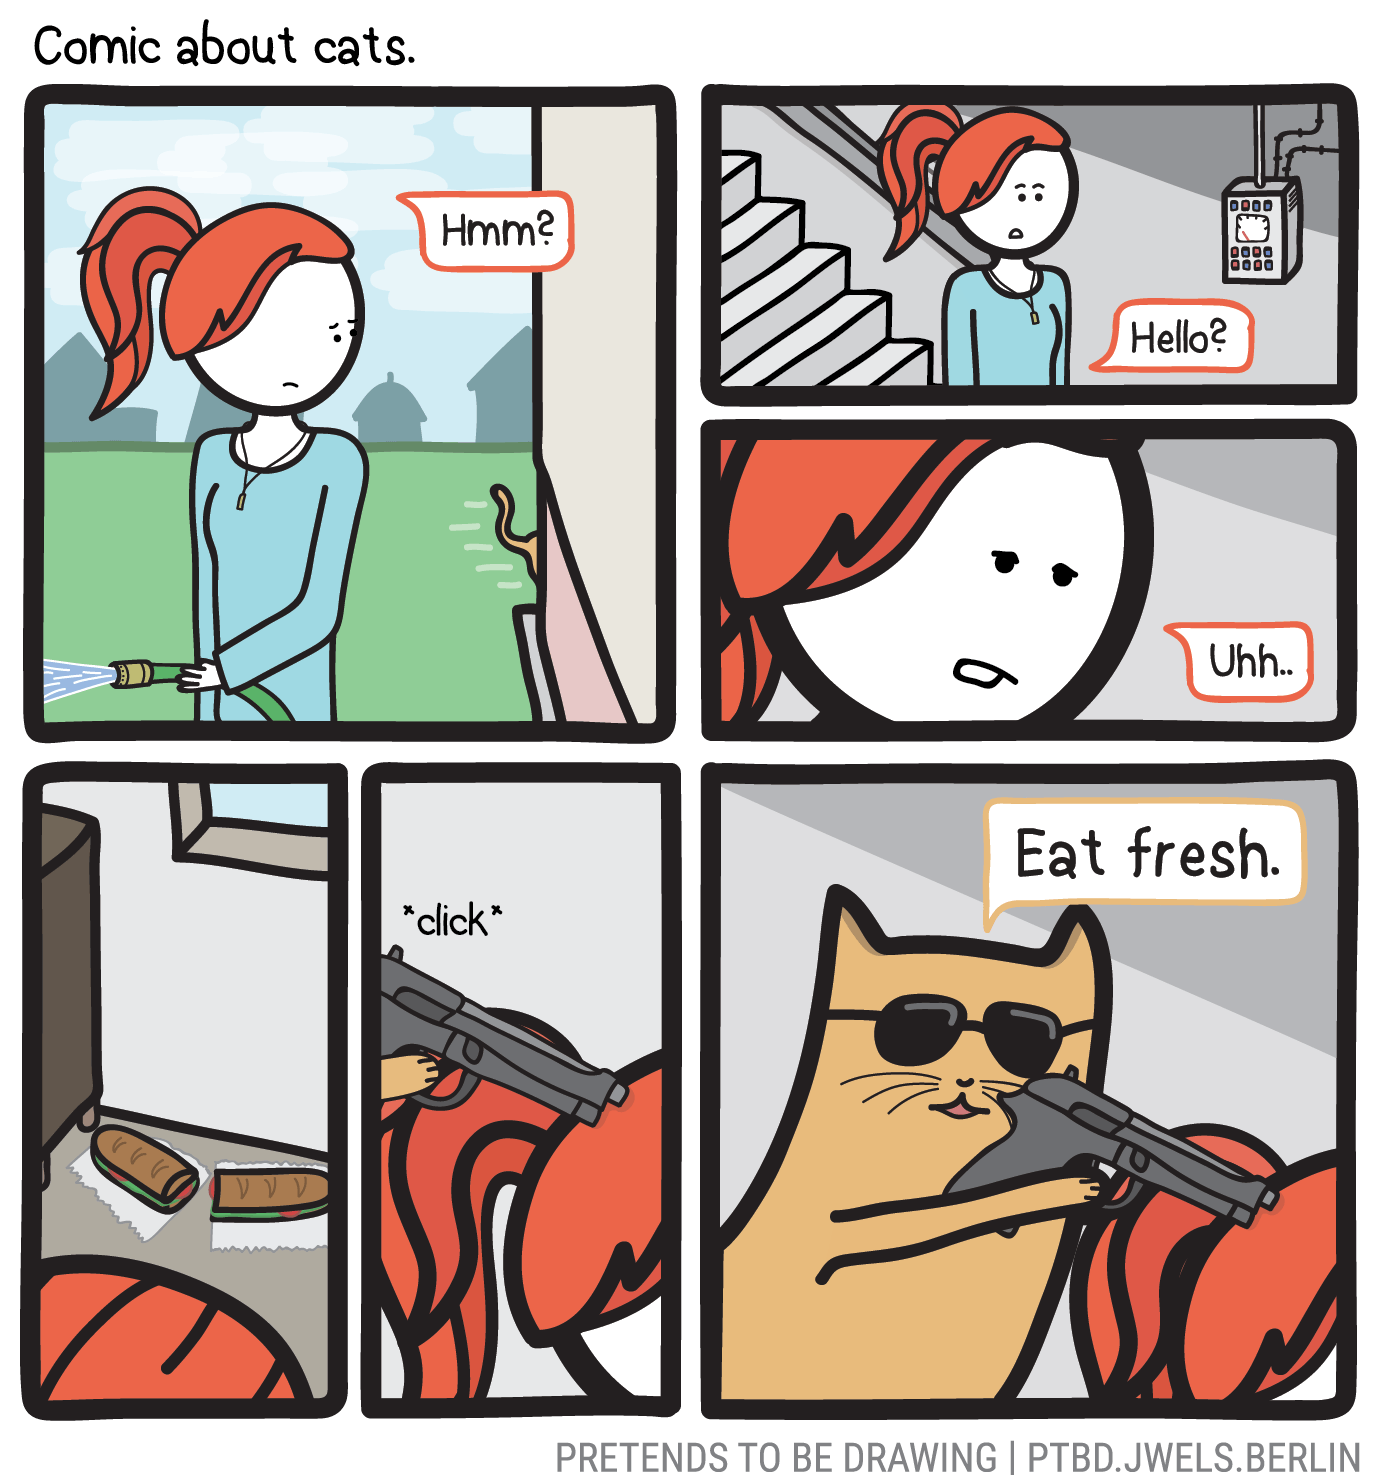 Drawing smirk comic book. About cats pretends to